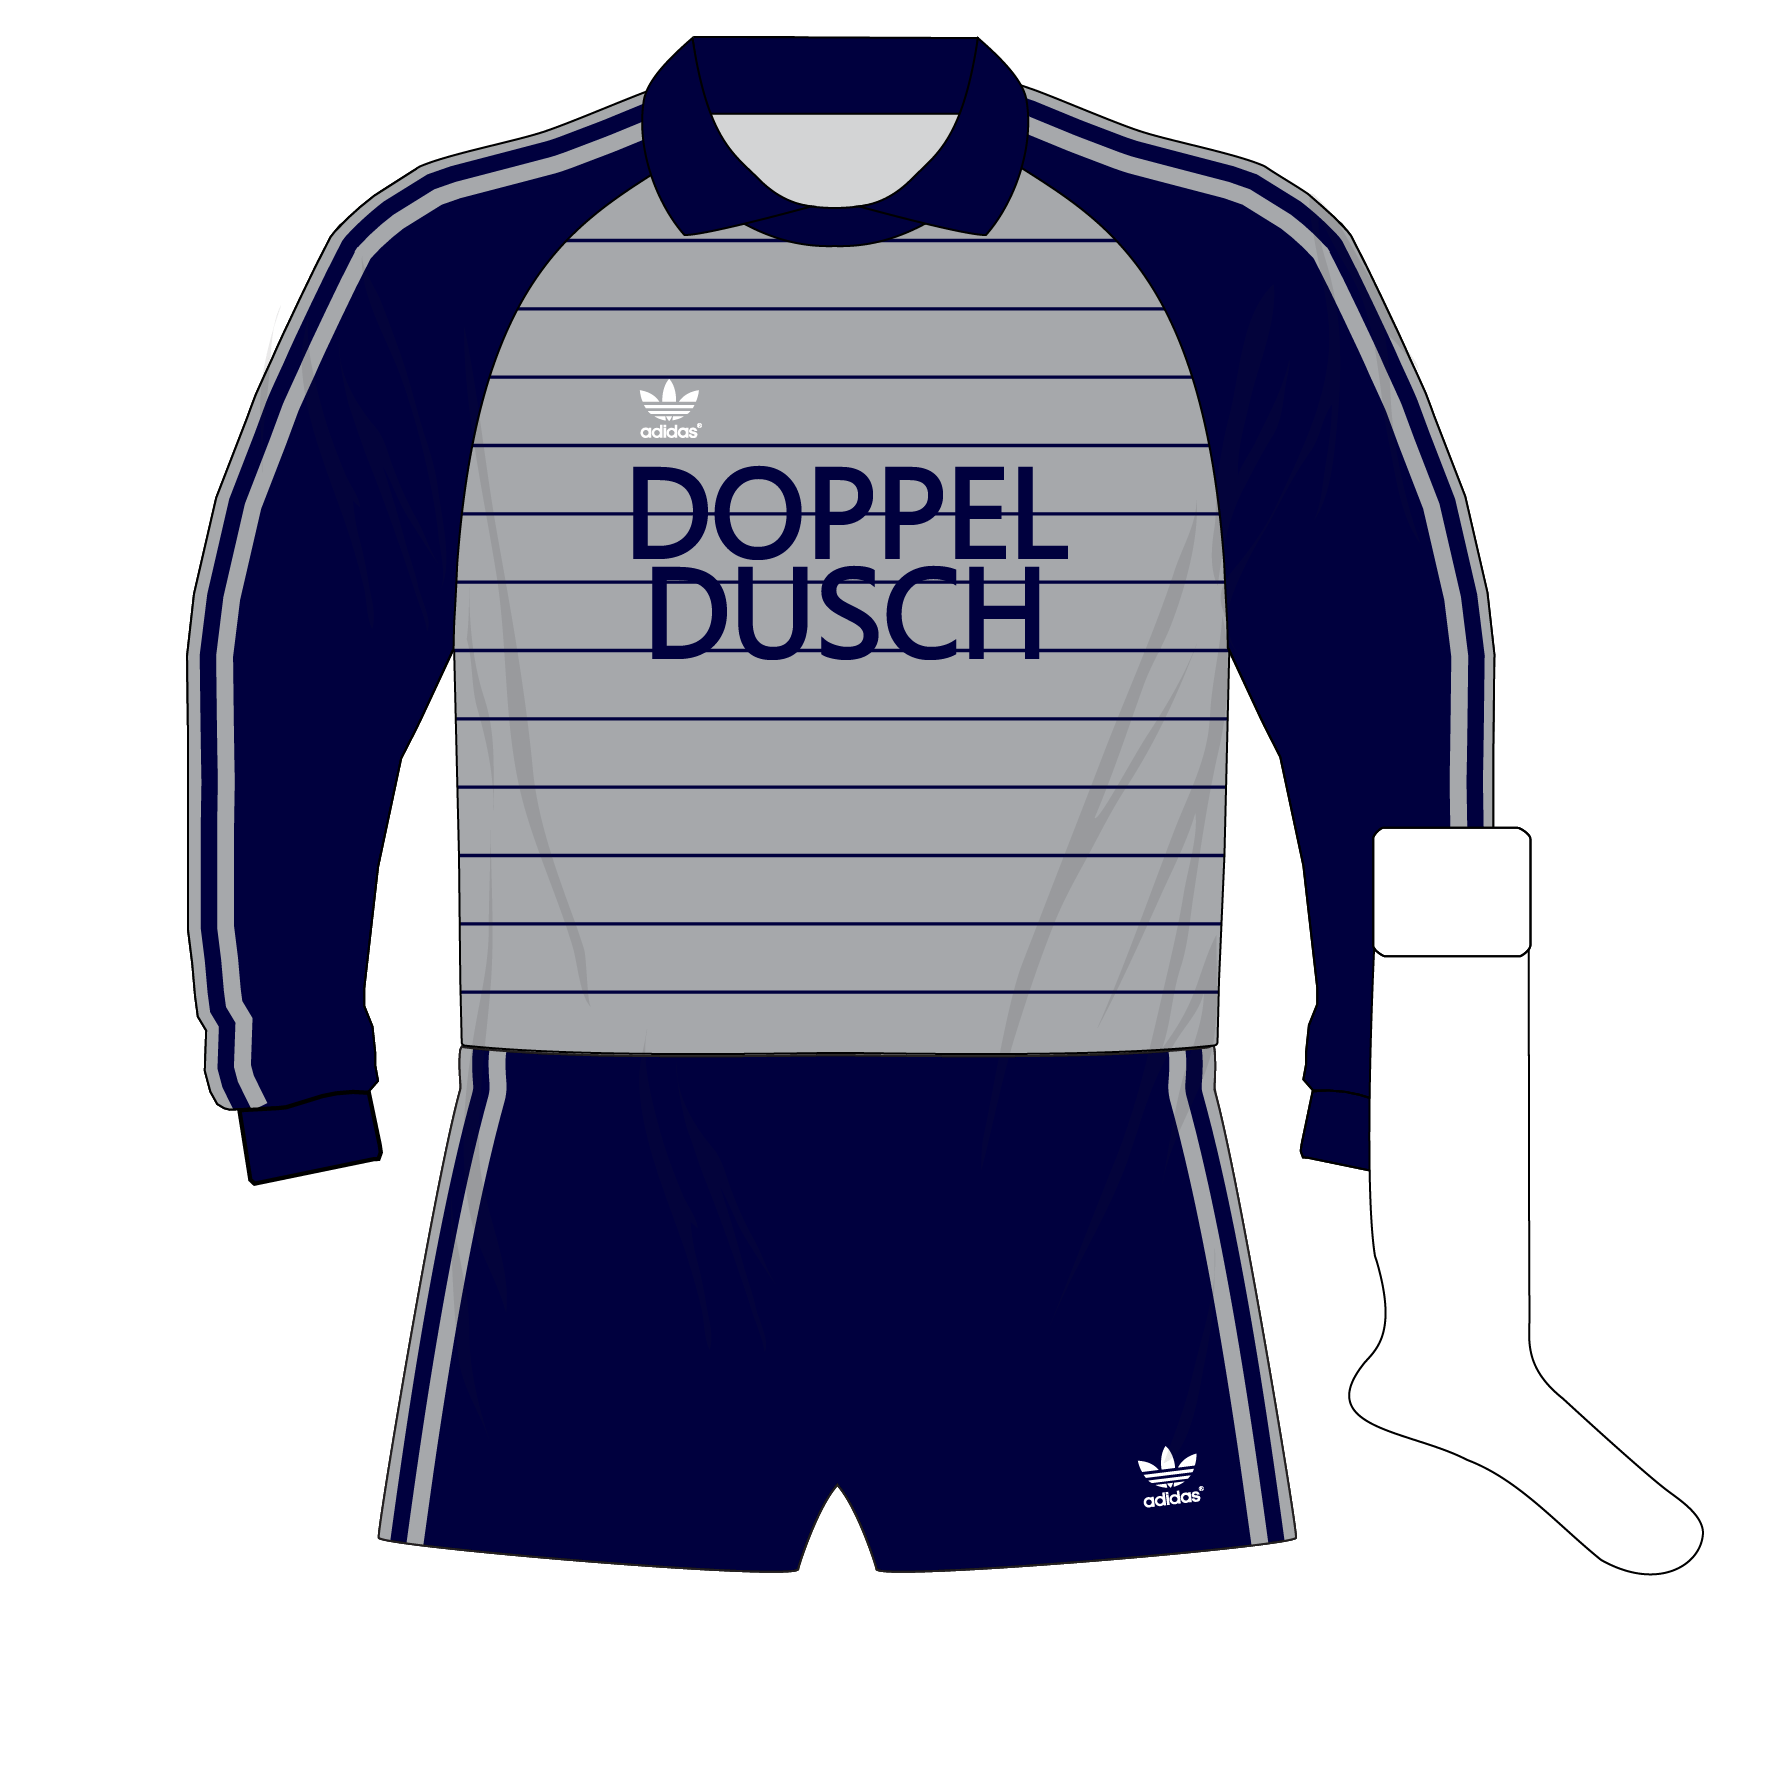 adidas-Koln-Colonge-grey-goalkeeper-torwart-shirt-trikot-1982-Schumacher